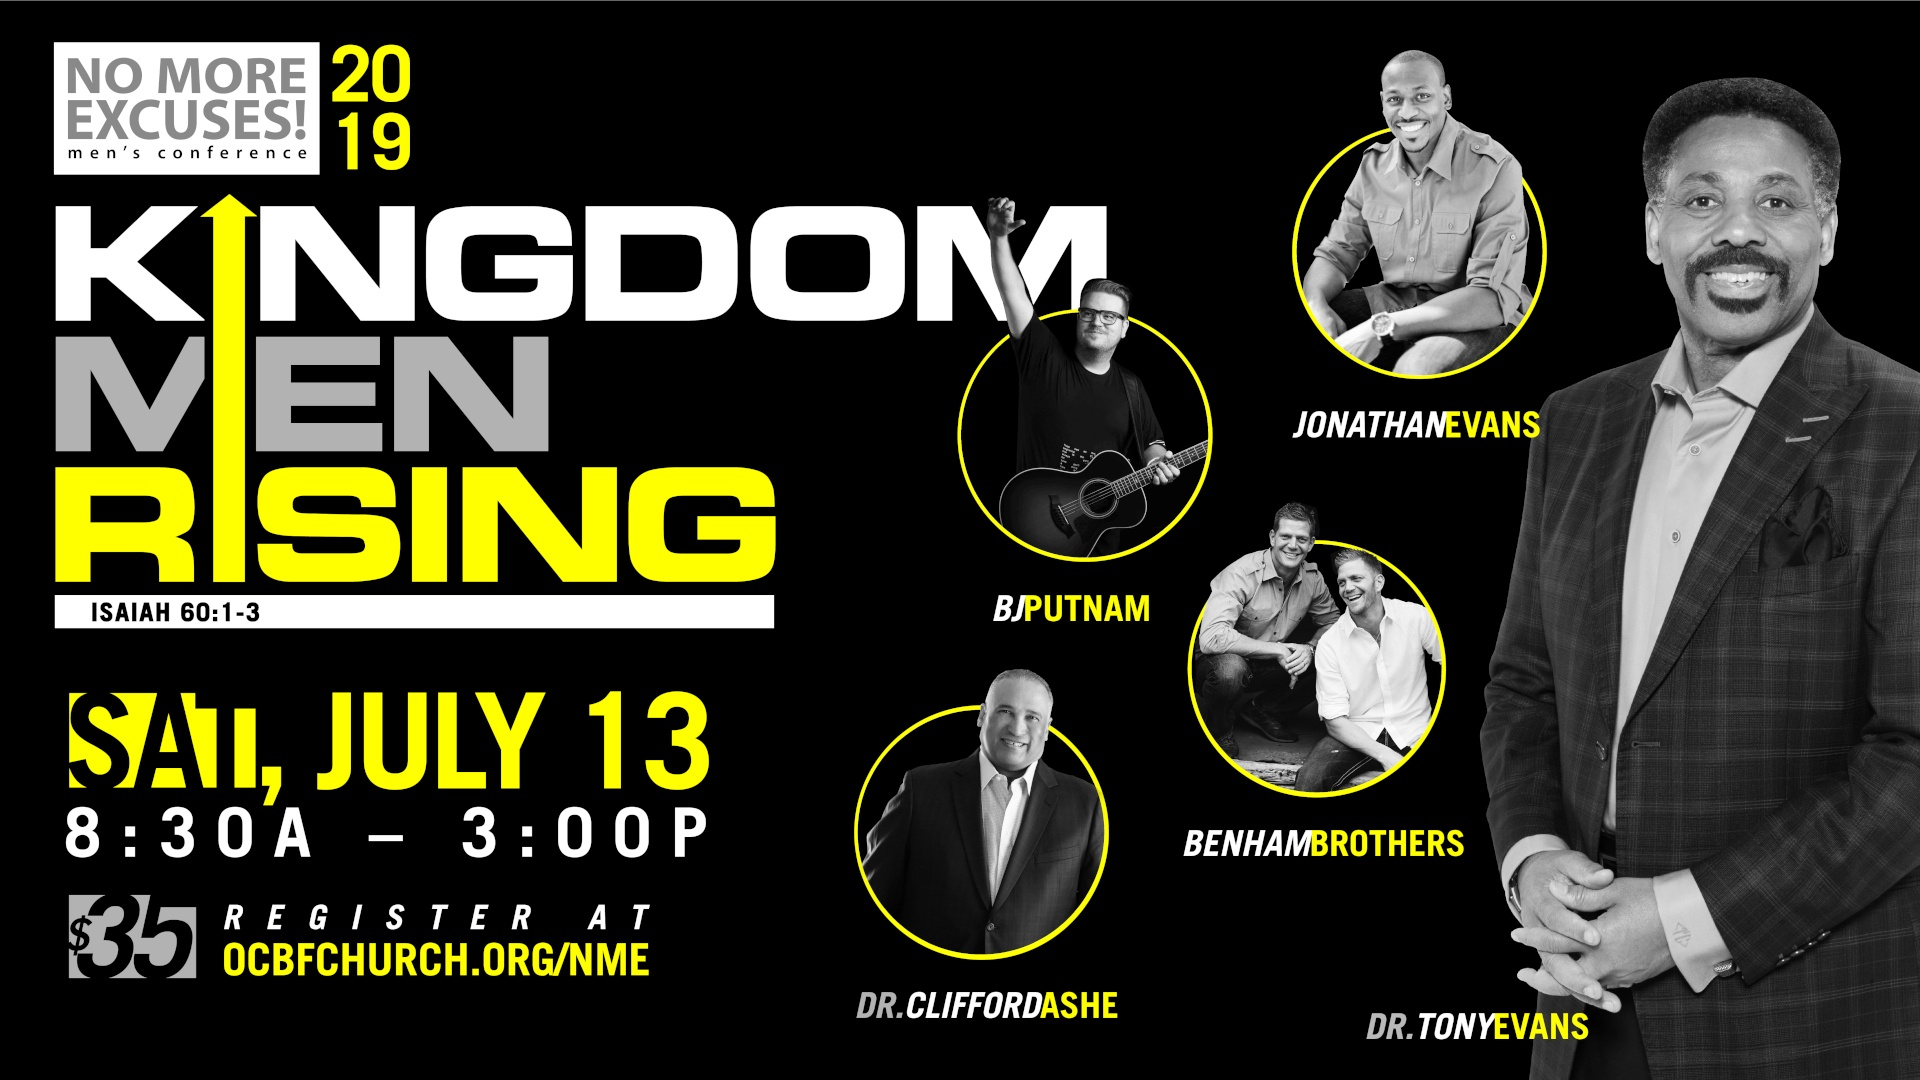 No More Excuses Men's Conference: Kingdom Men Rising